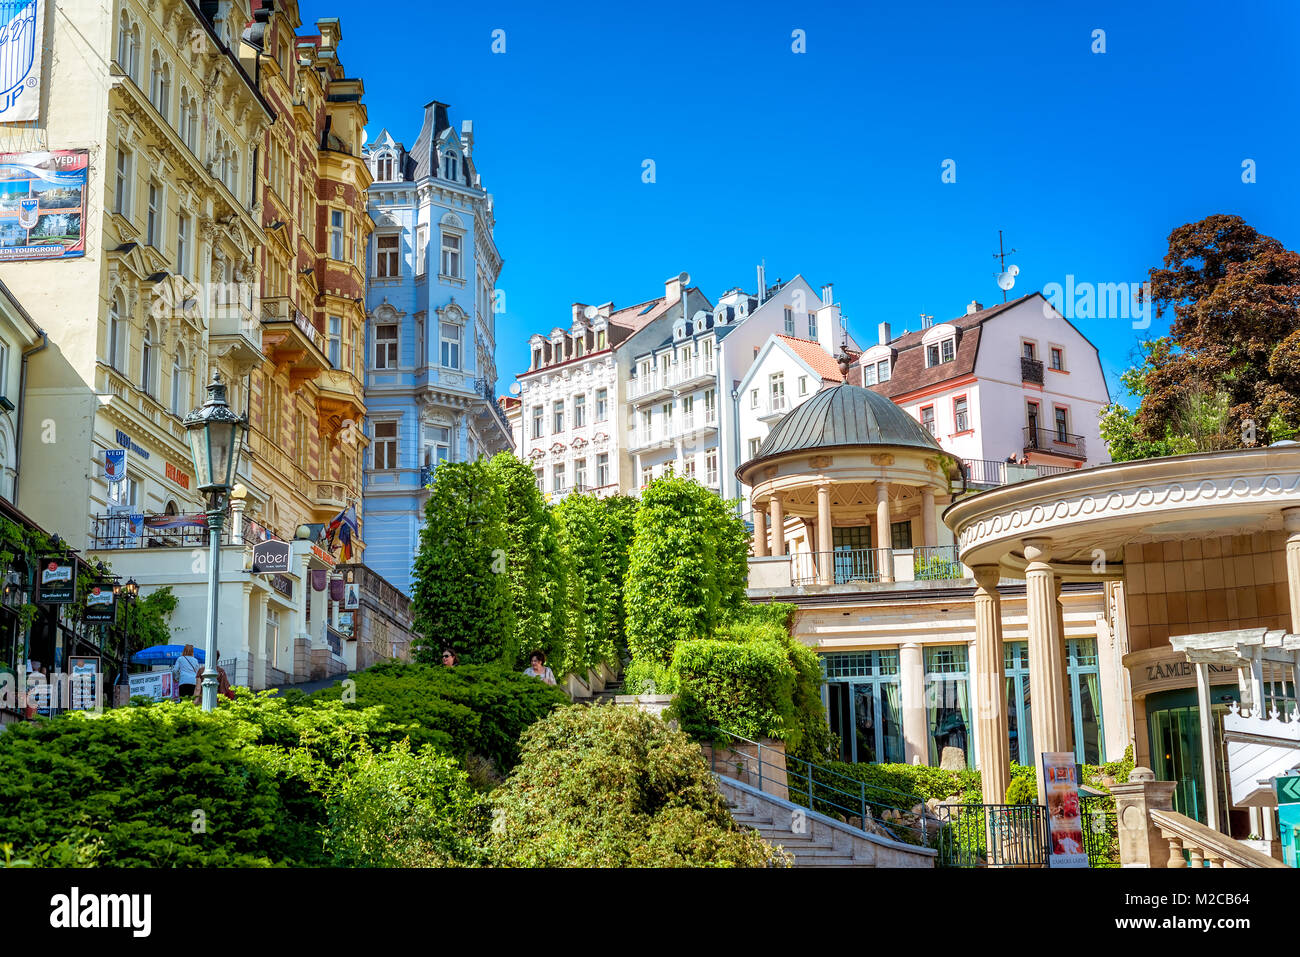 karlovy vary lesbian singles The historic grandhotel pupp in karlovy vary was built in 1701 and has become one of the major landmarks of the famous spa town  number of single rooms 31, number .